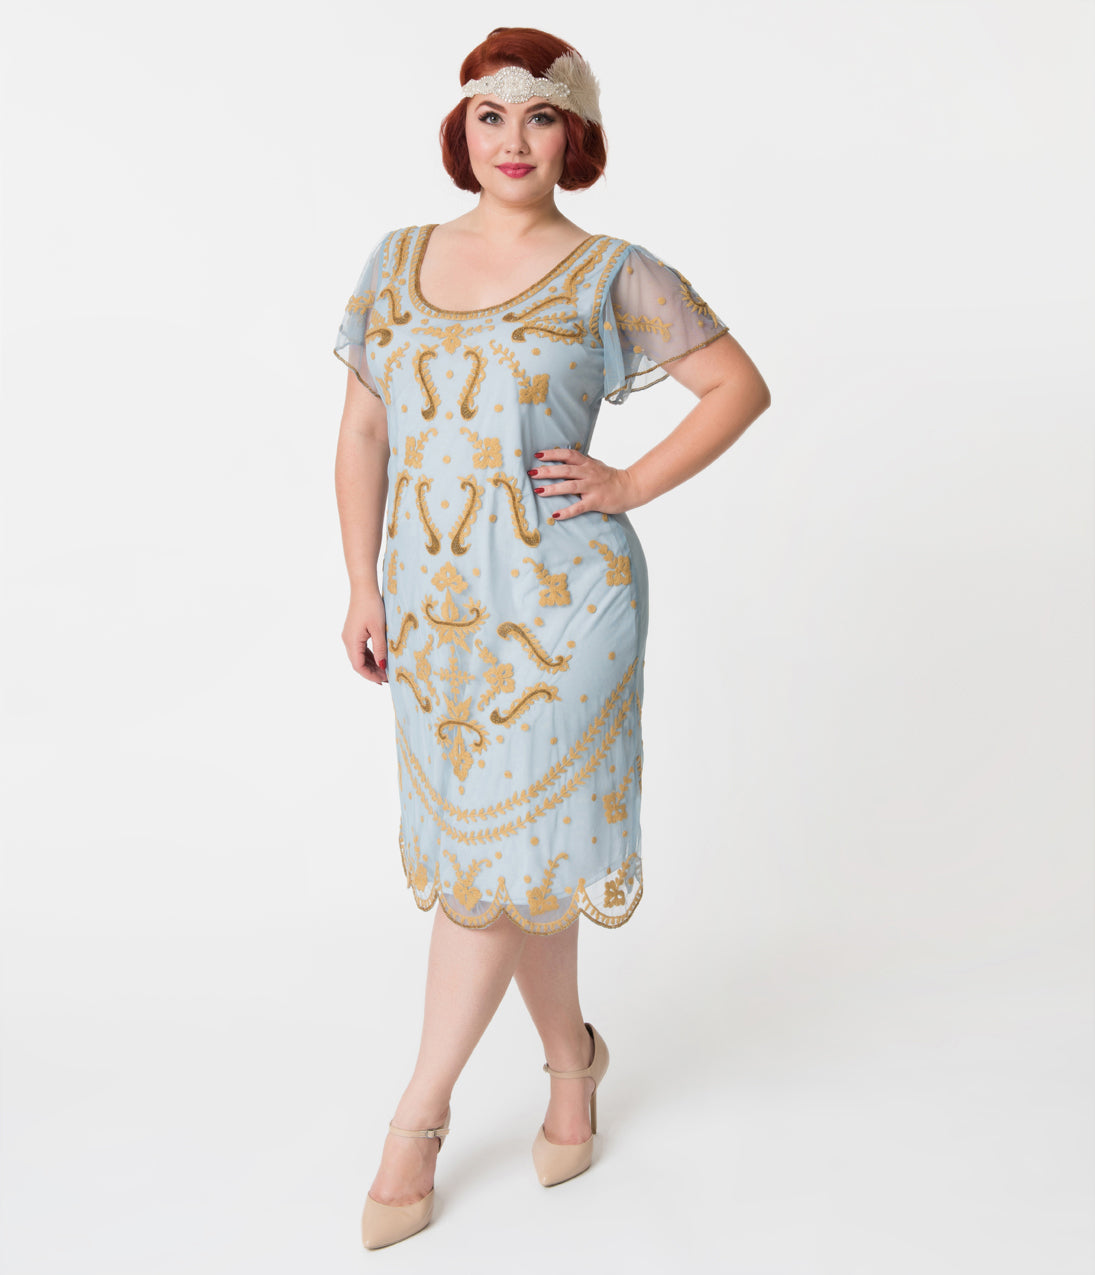 1920s Flapper Costume : How to Guide Vintage Style Plus Size Light Blue  Gold Embroidered Florence Flapper Dress $98.00 AT vintagedancer.com